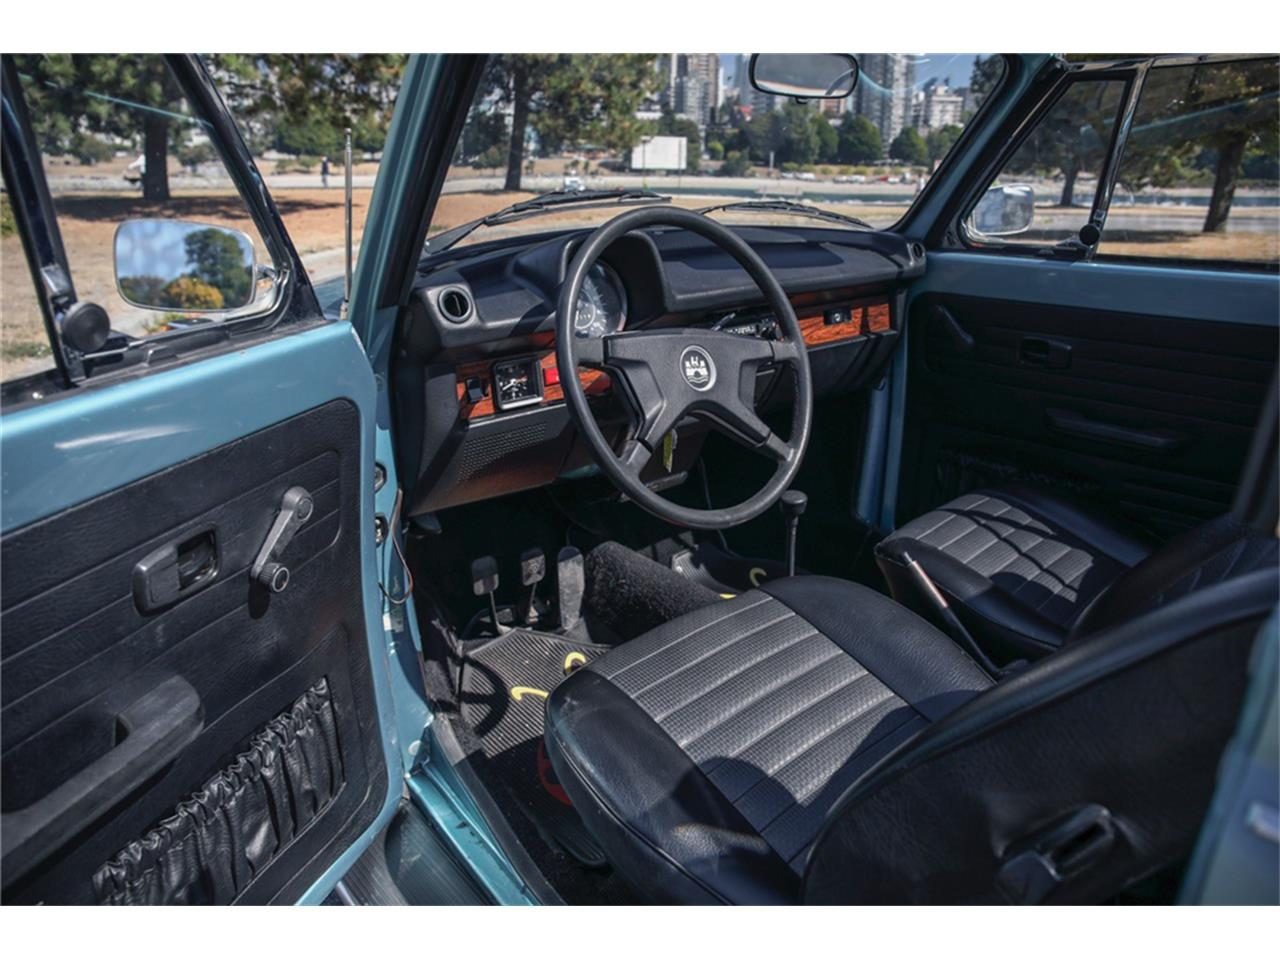 Large Picture of '79 Beetle located in Nevada Auction Vehicle Offered by Barrett-Jackson - OI5U